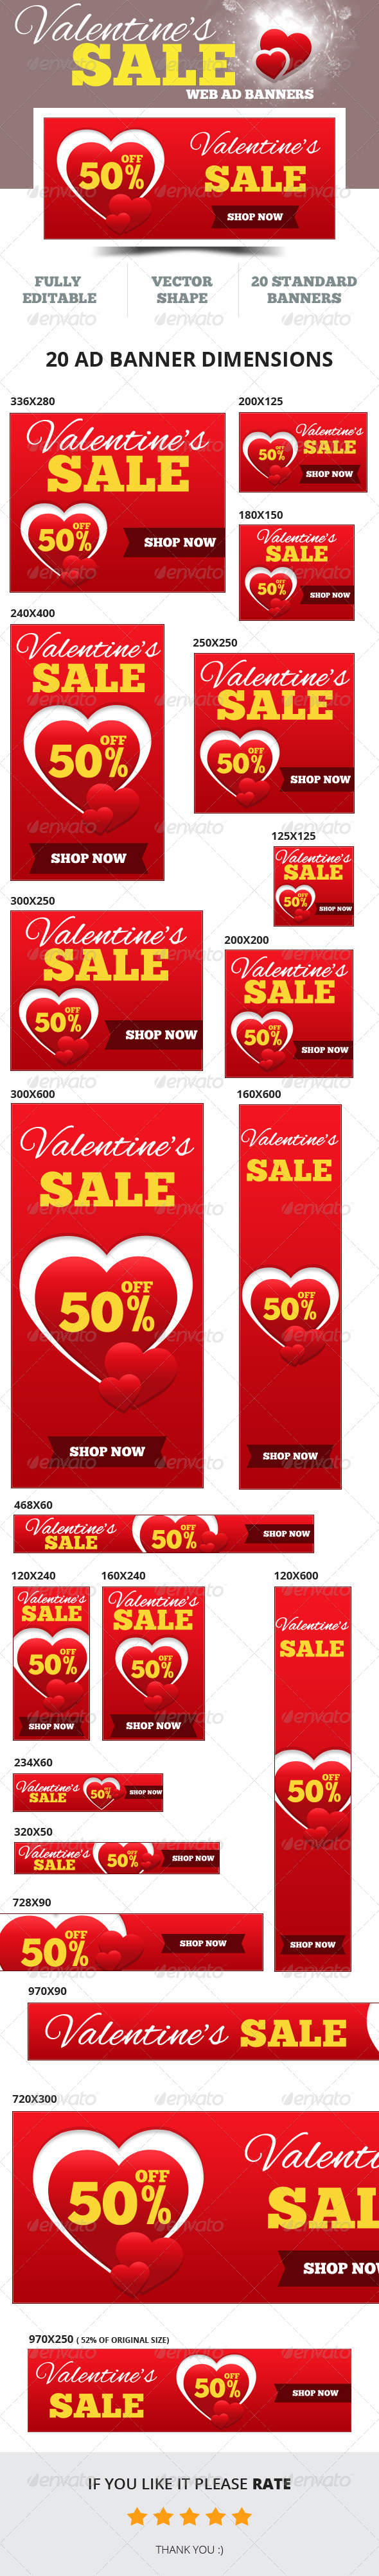 Valentine's Sale Web Ad Banners - Banners & Ads Web Elements